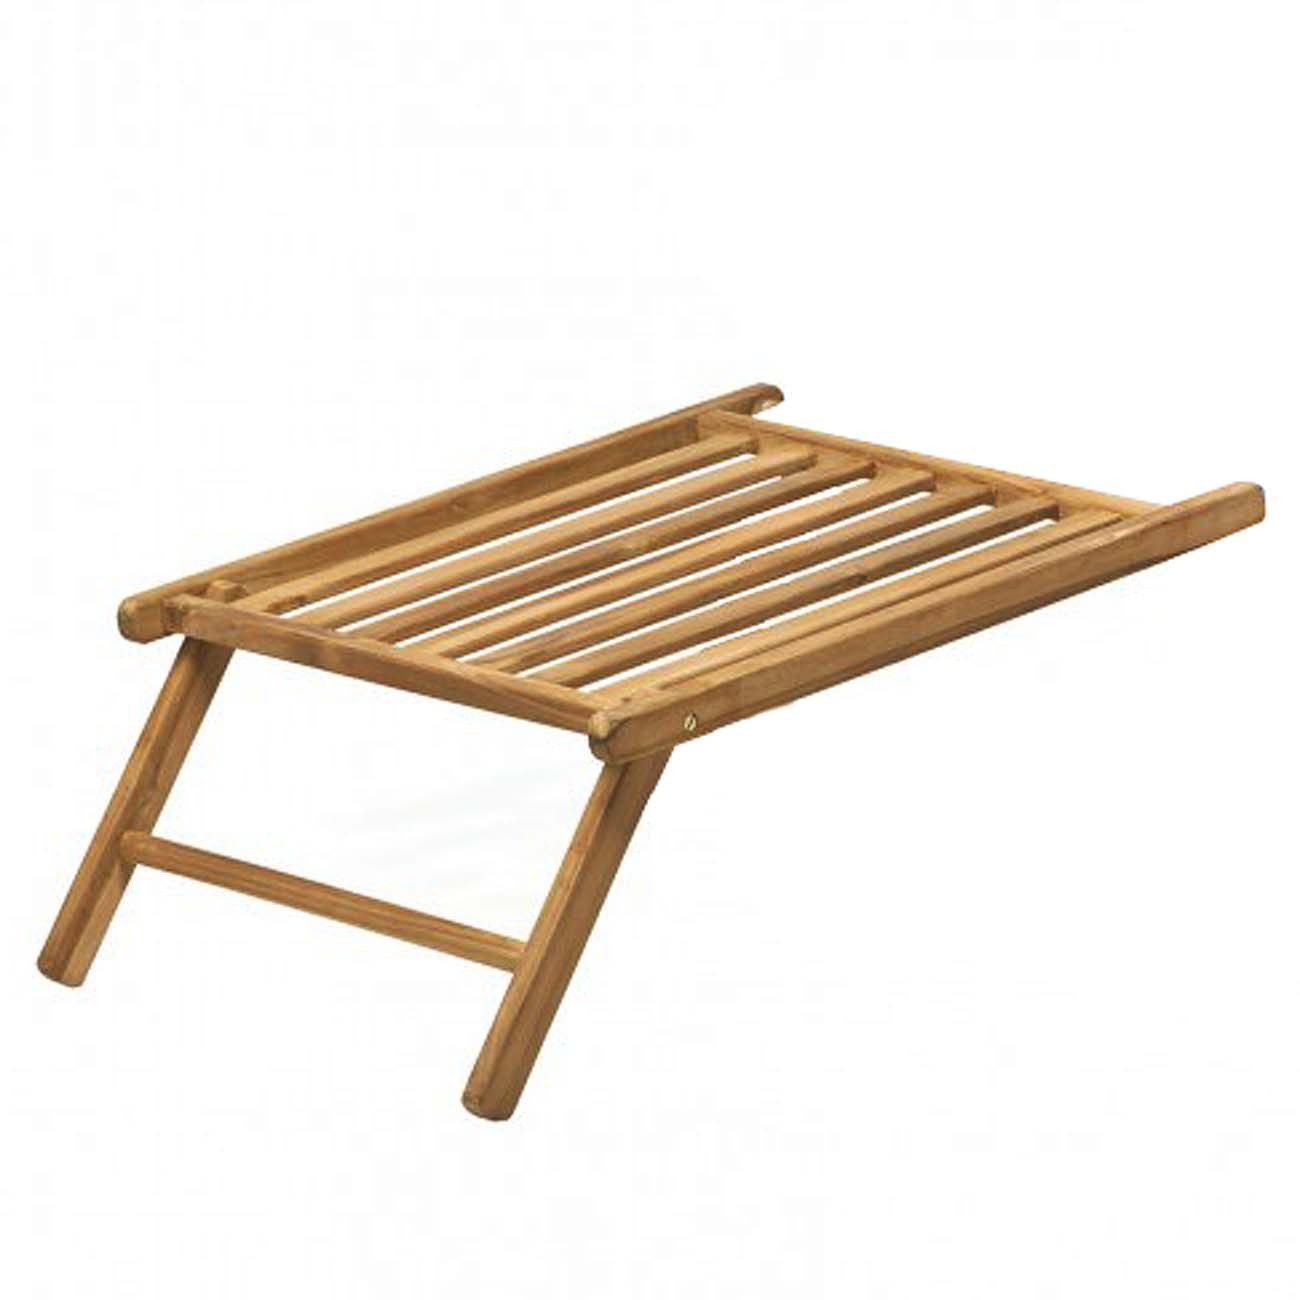 jan kurtz fu teil holz f r deckchair bzw strandstuhl ohne stuhl ebay. Black Bedroom Furniture Sets. Home Design Ideas